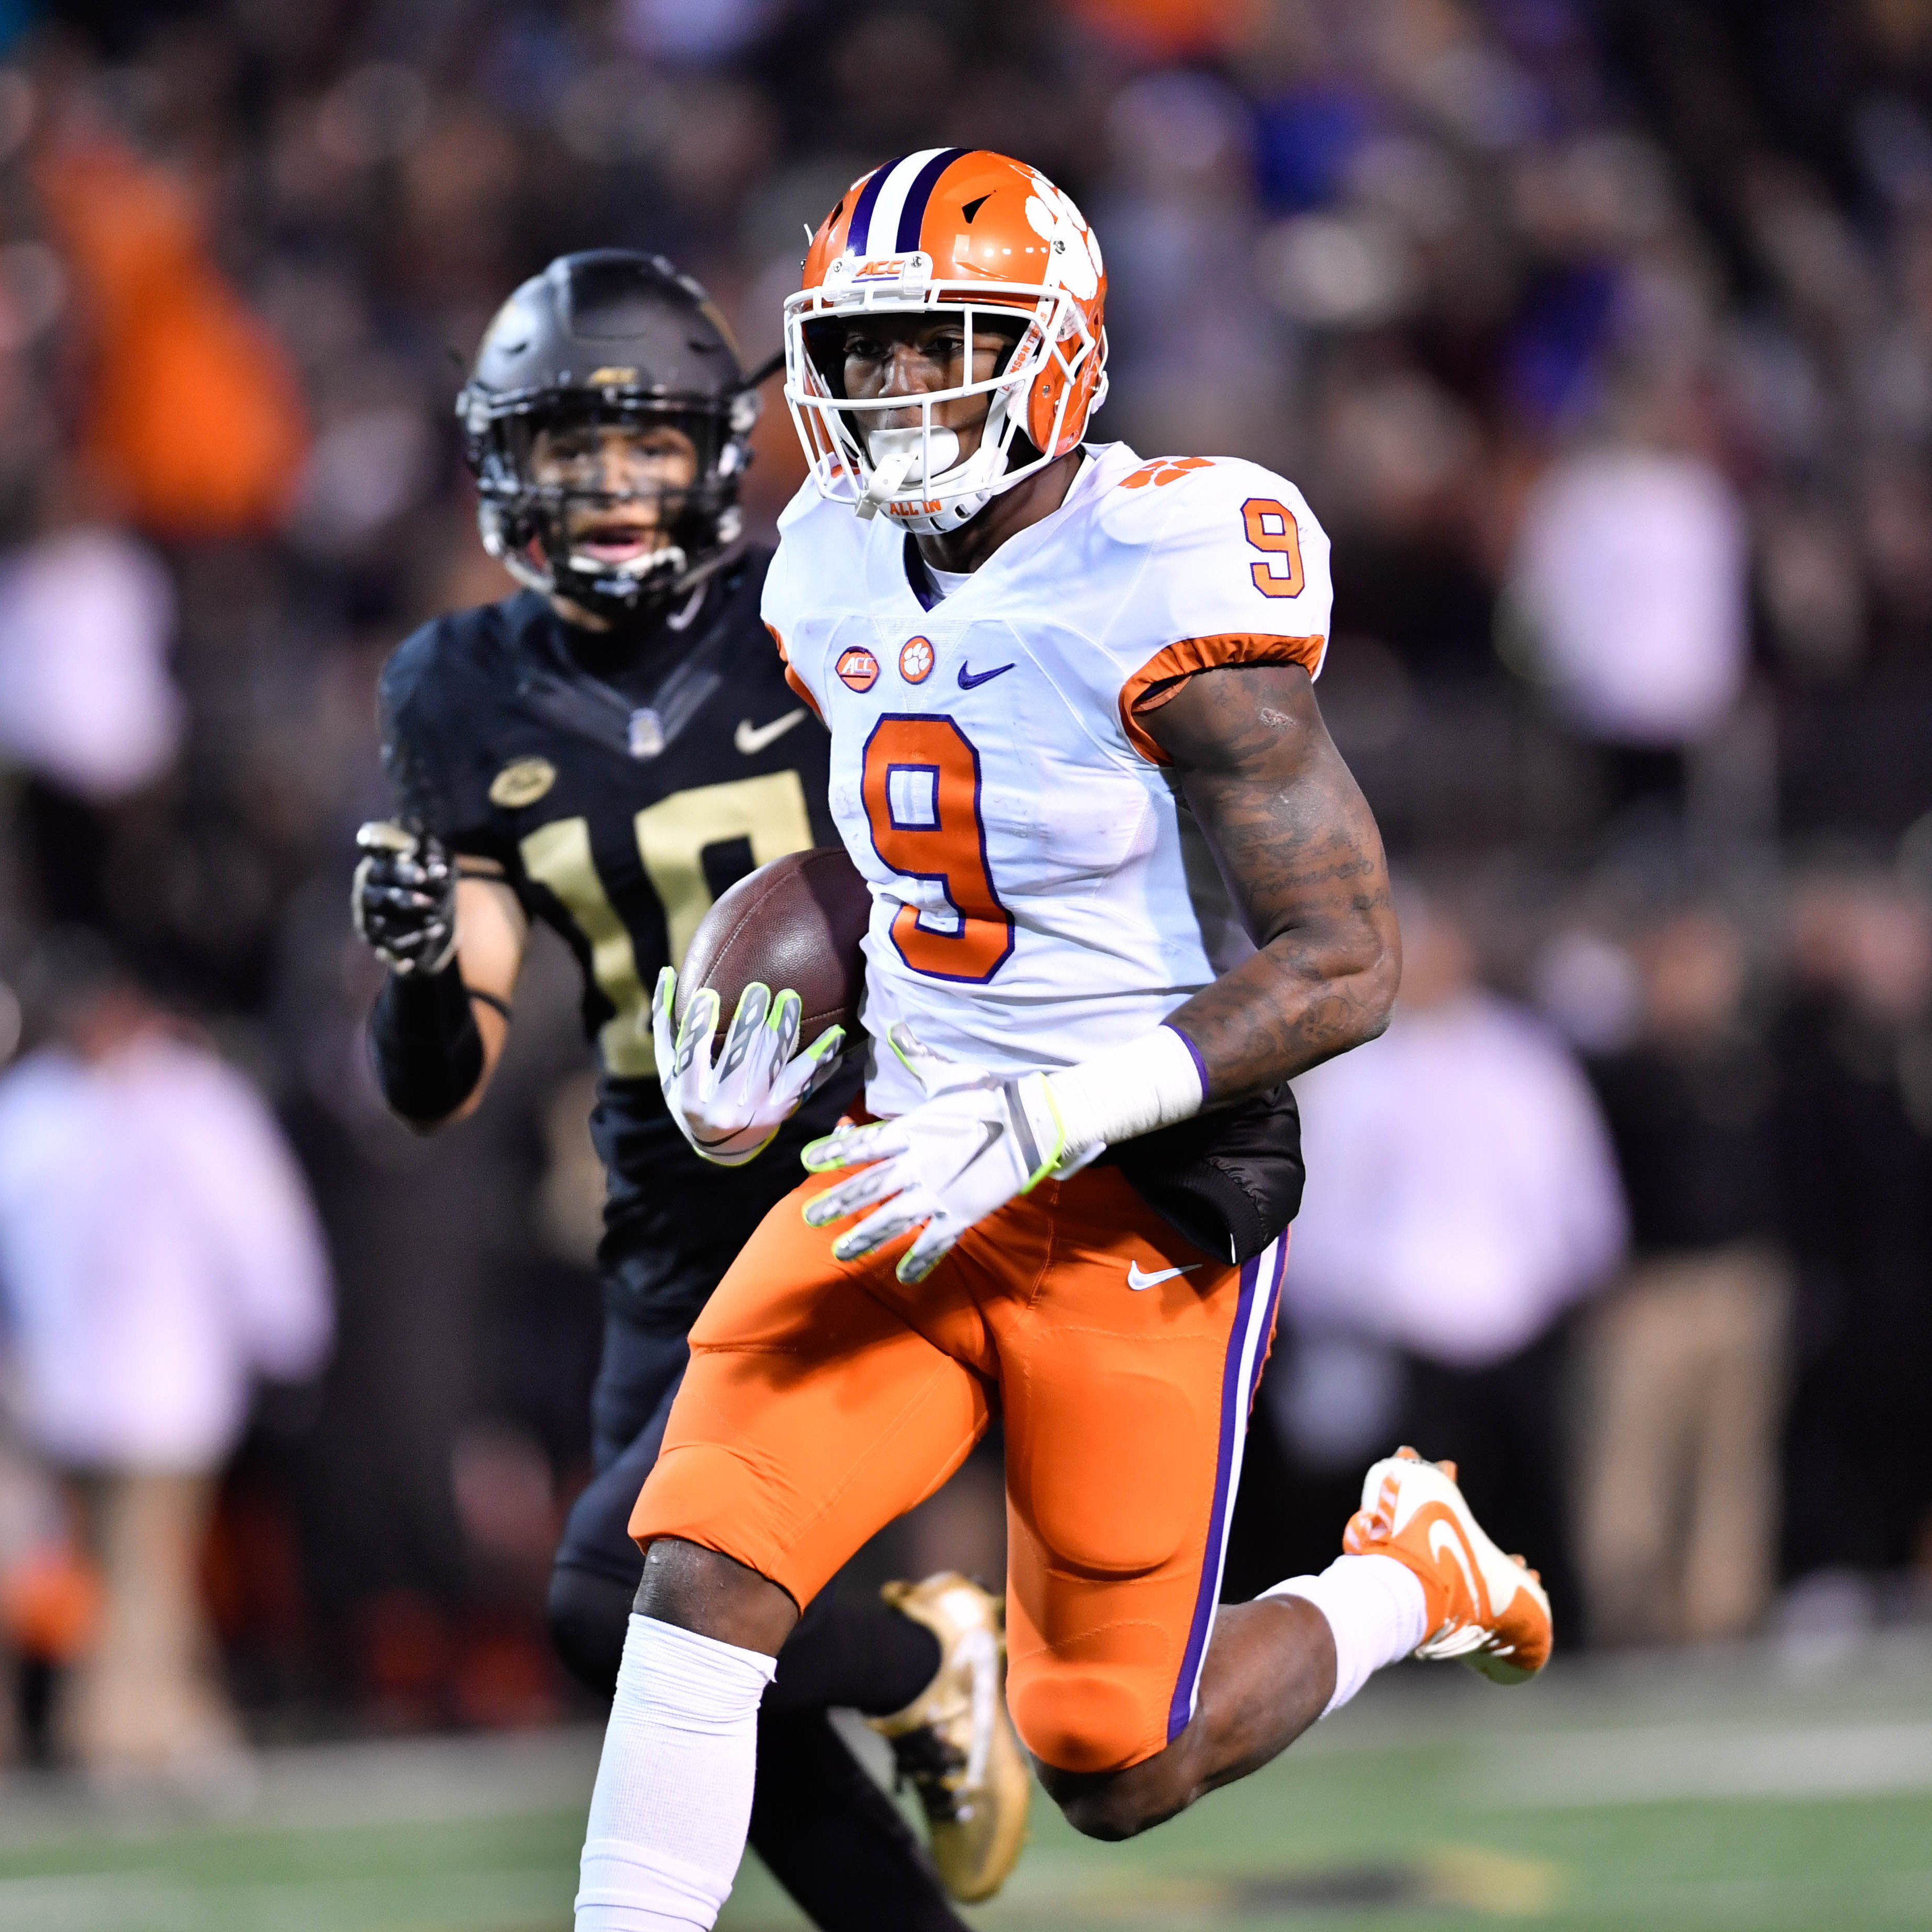 Clemson Beats Wake, Earns Trip to ACC Championship Game